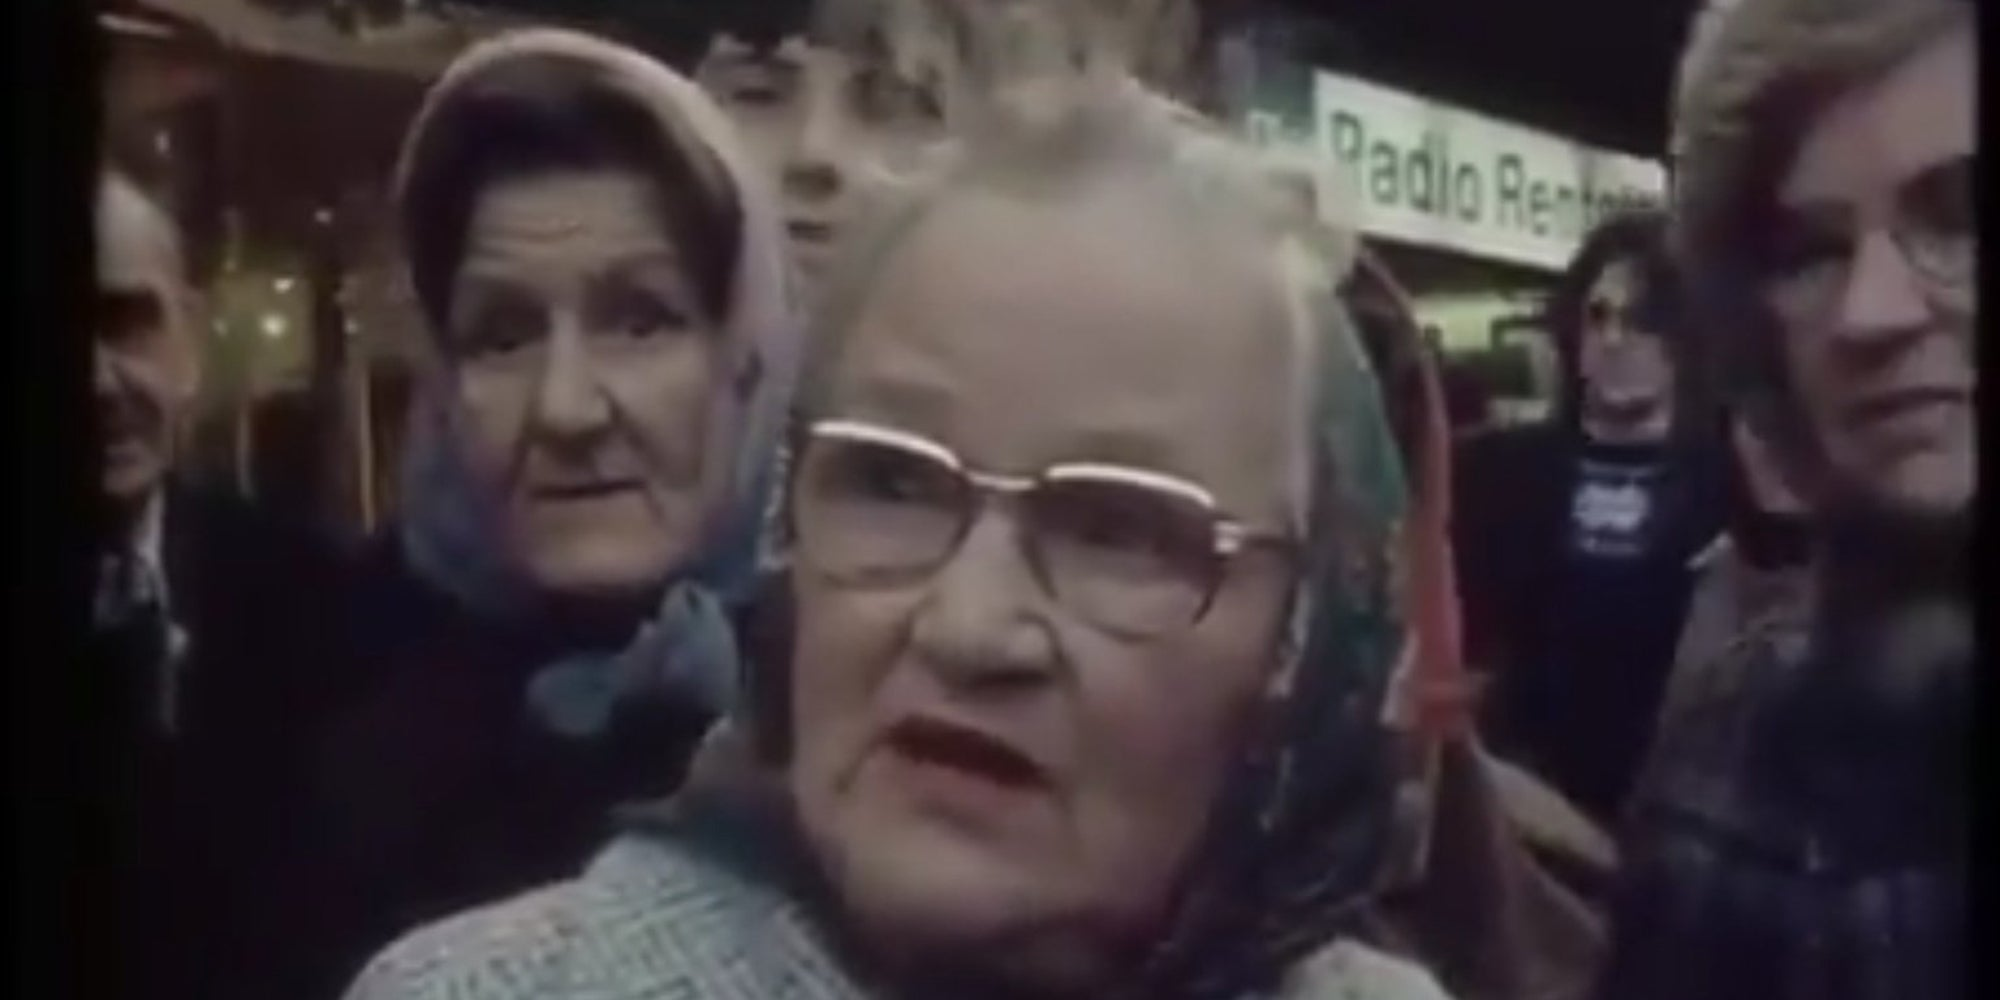 This 1980s video from Sunderland where people give their views on homosexuality is enlightening